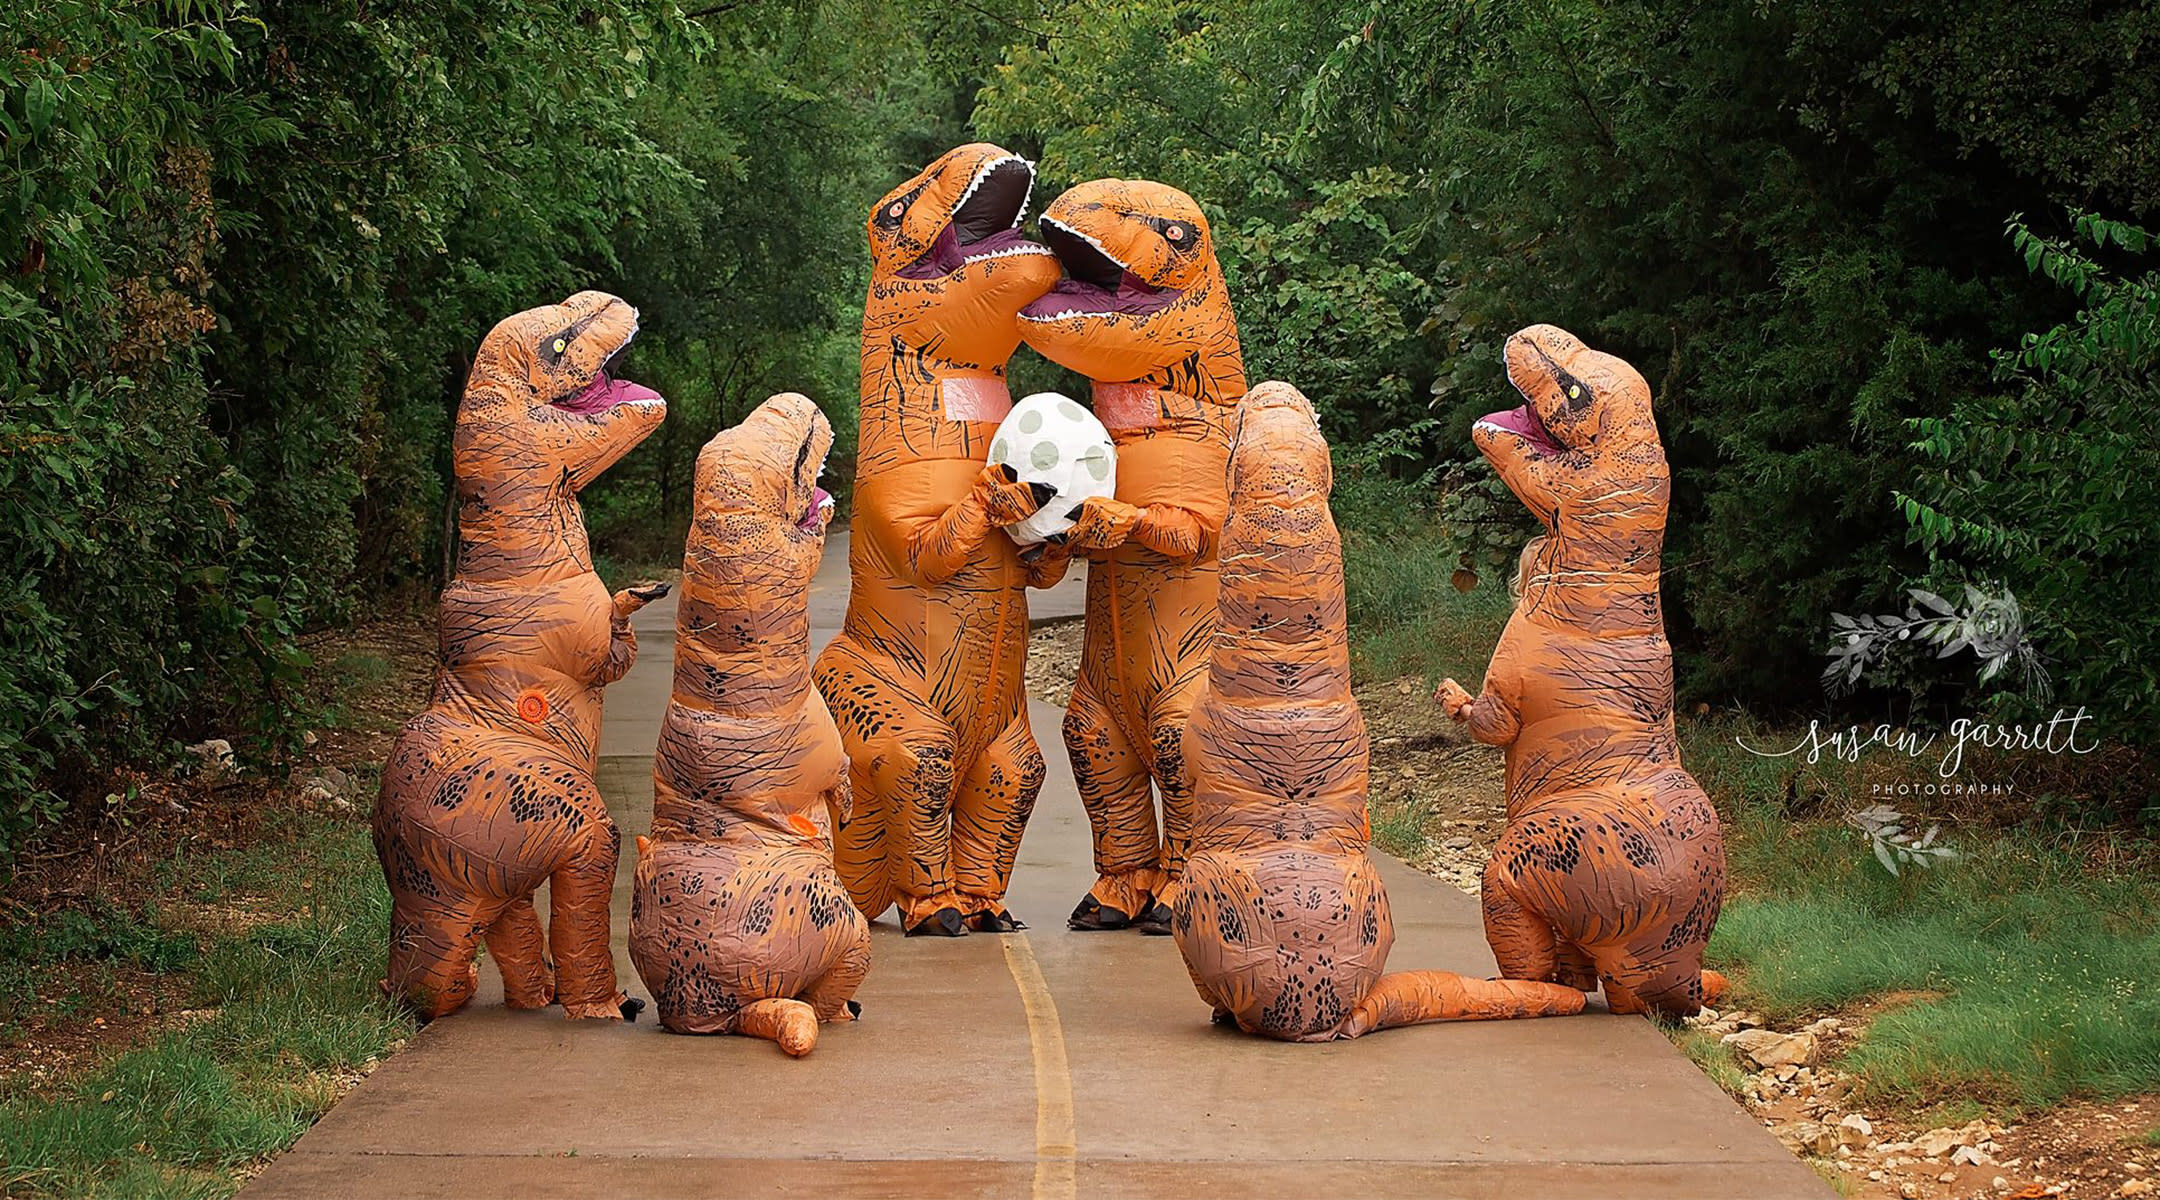 family dresses as dinosaurs to announce their baby